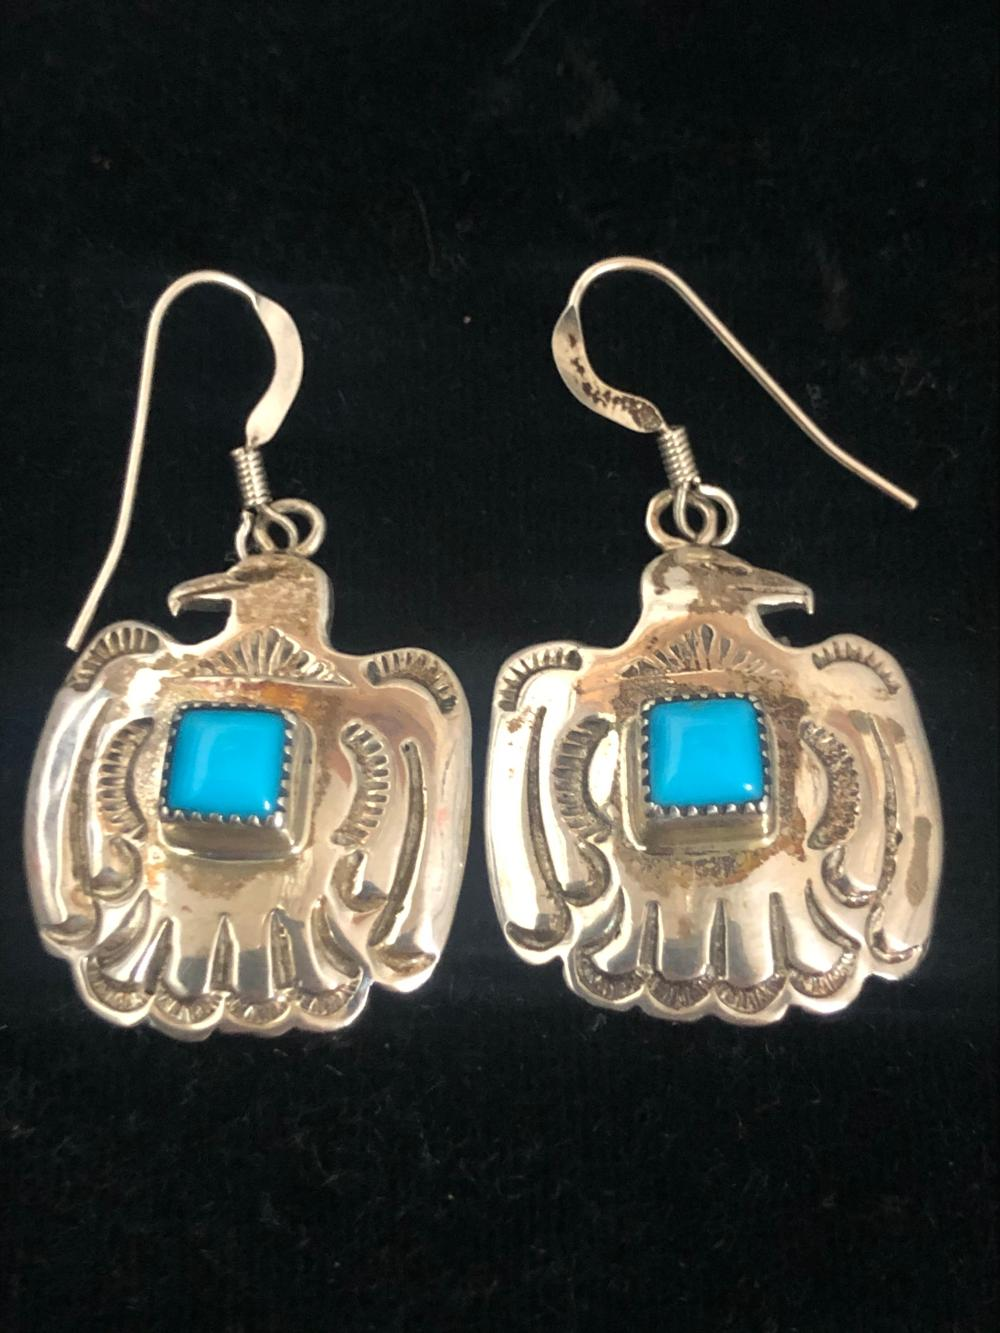 Eagle shaped sterling silver earrings with turquoise stone